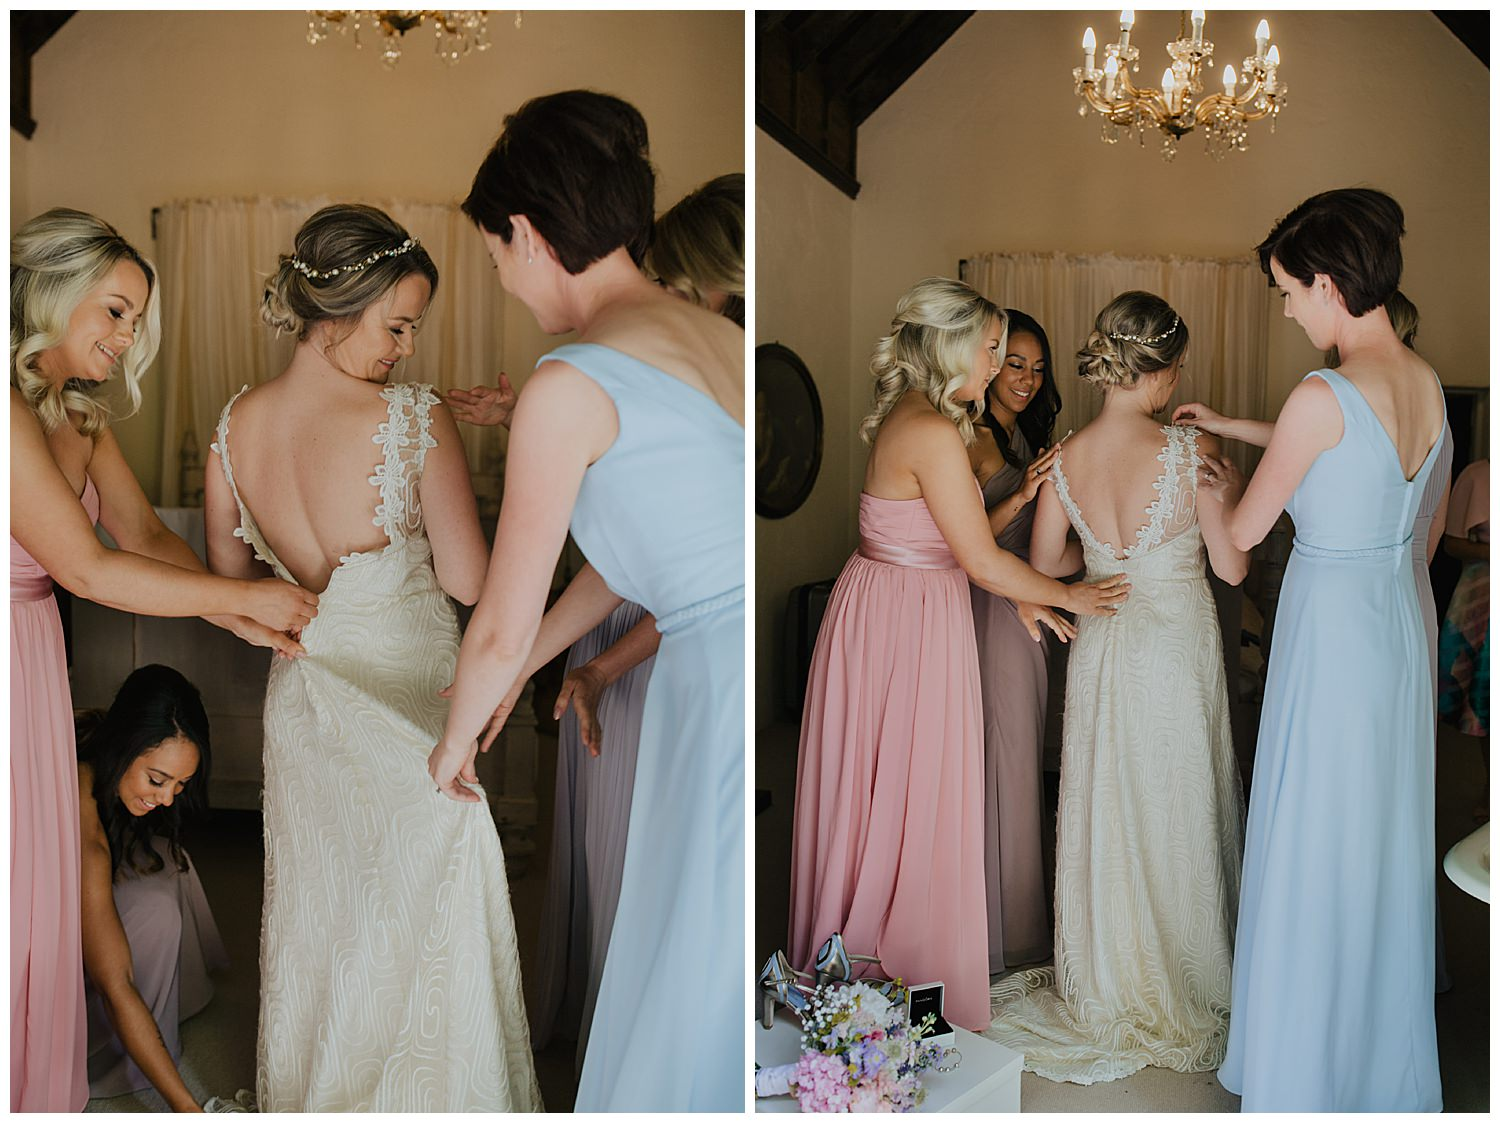 j&r_ballybeg_house_wedding_photographer_livia_figueiredo_151.jpg